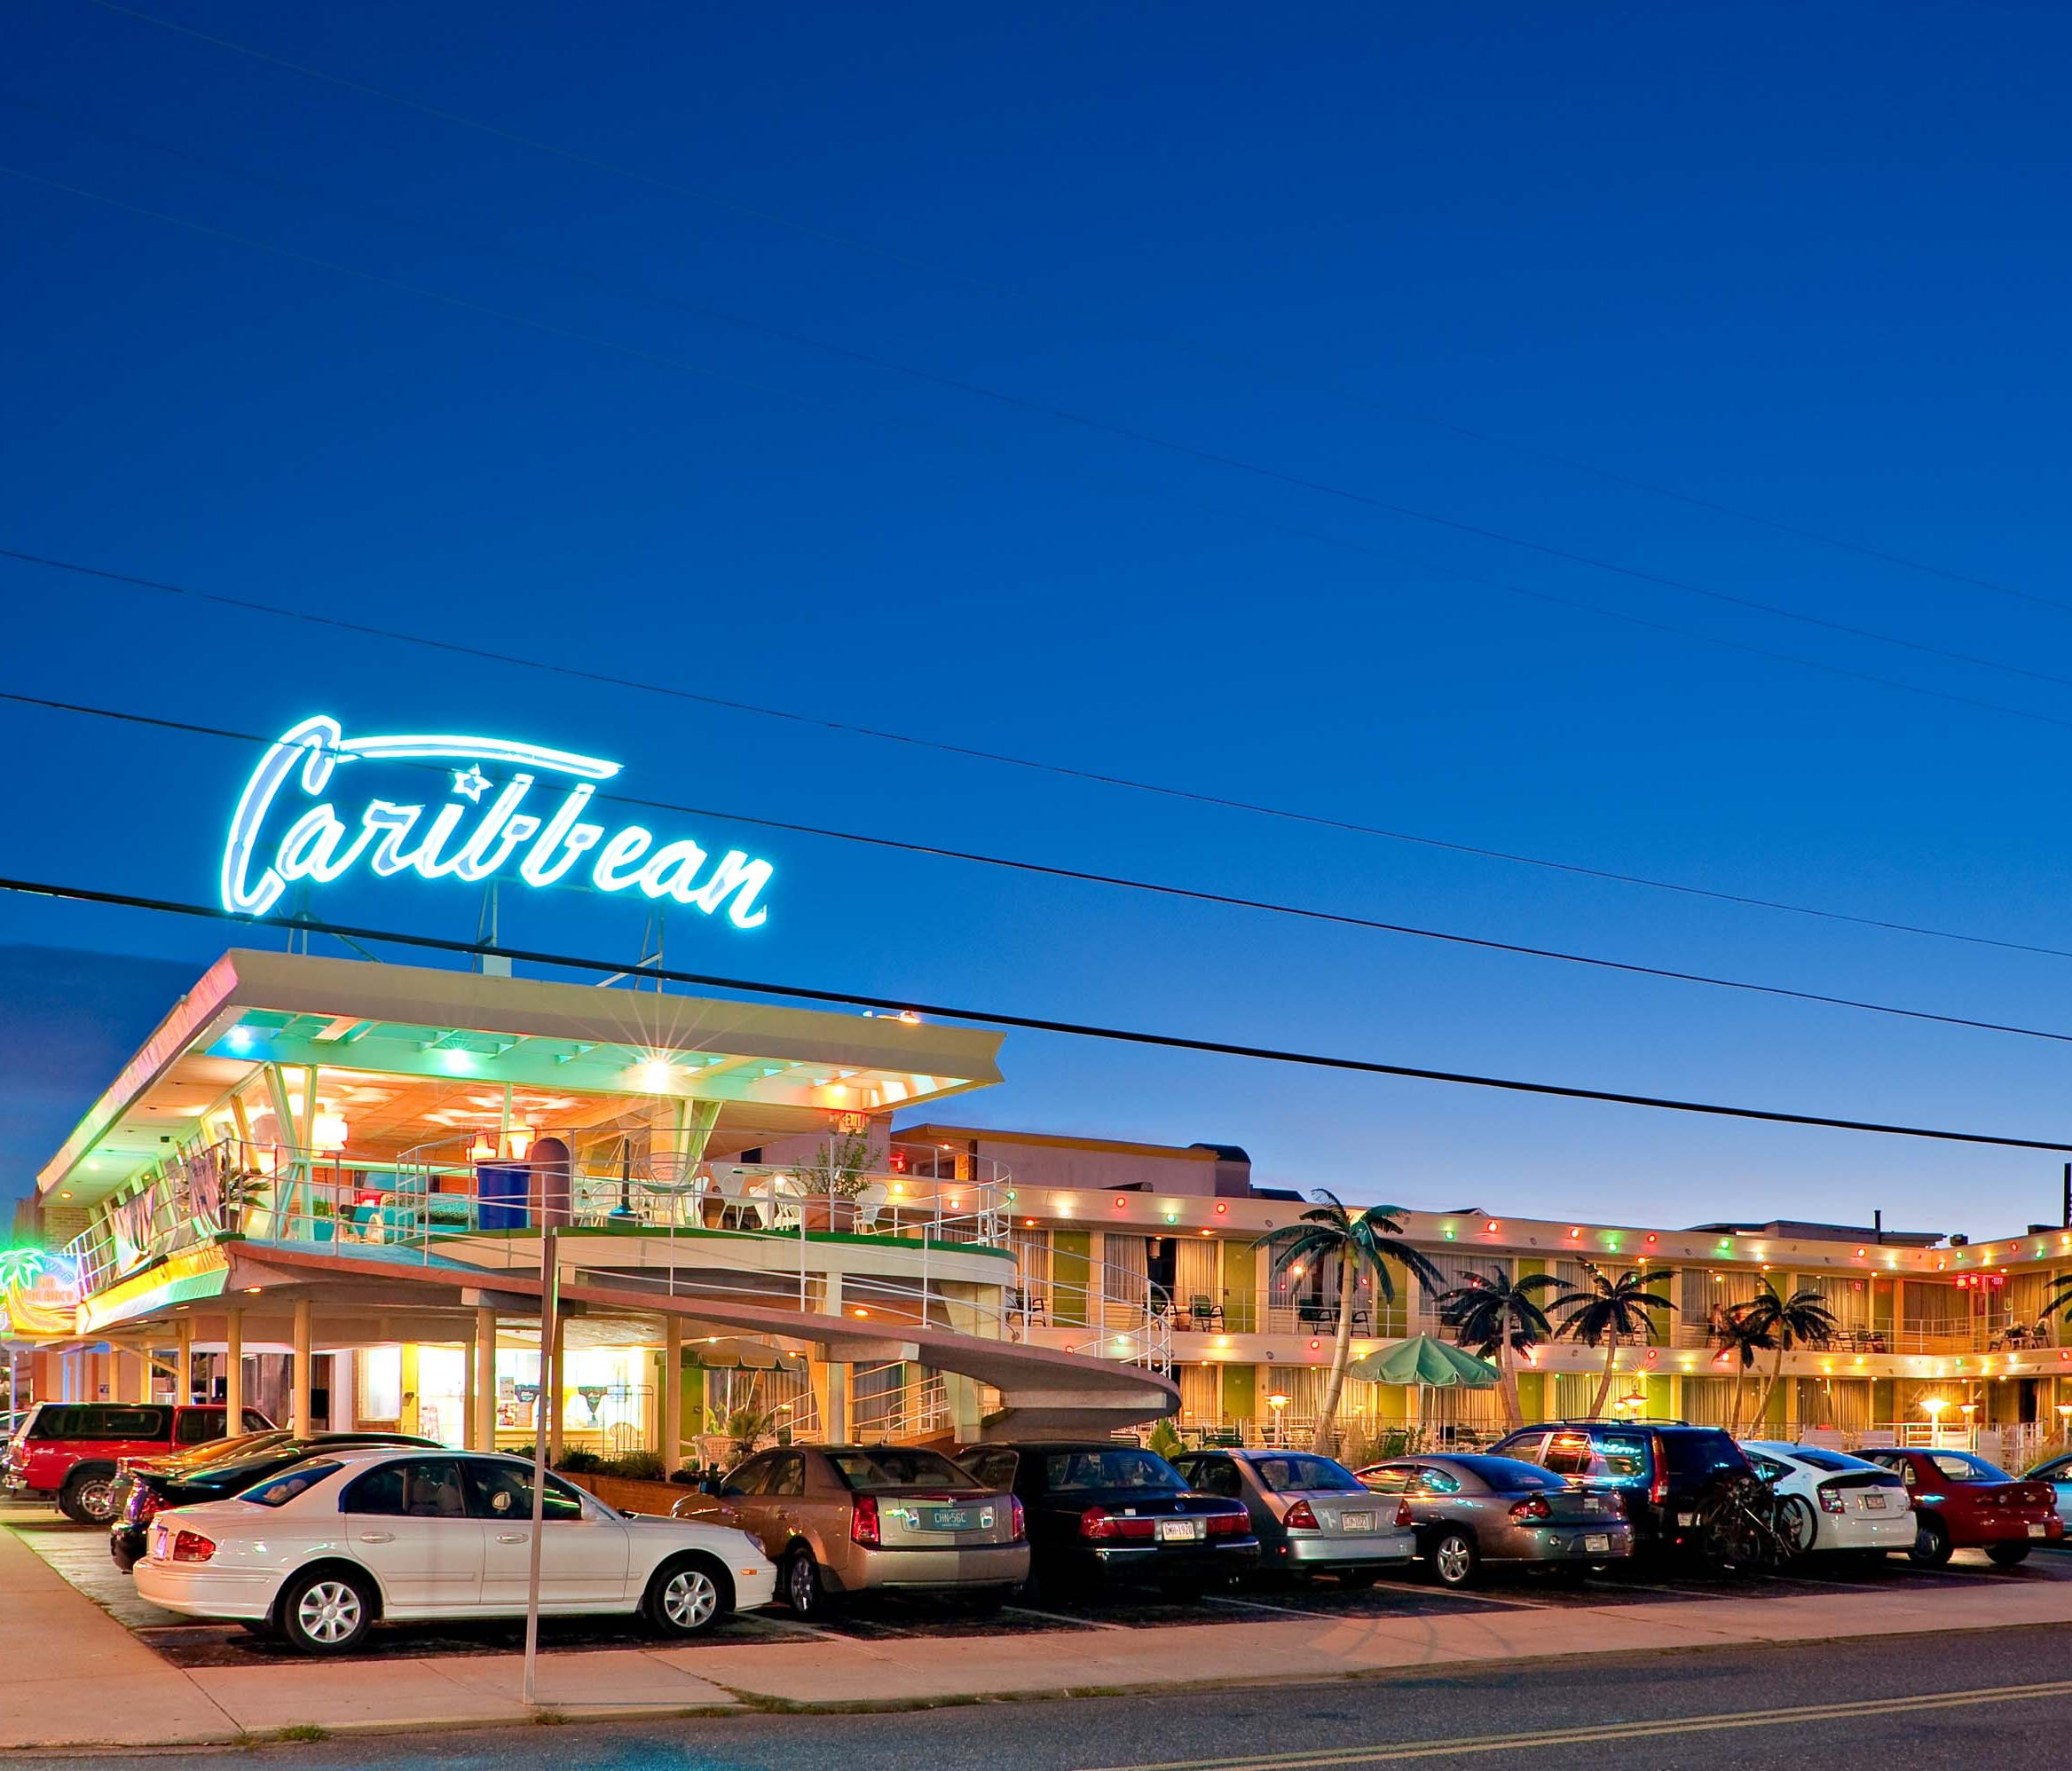 Doo Wop Preservation, Caribbean Motel, Wildwood: Following the success of seaside resort hotels in Atlantic City, Asbury Park and Spring Lake, beach communities began to proliferate on the Shore's southern barrier islands. Once highways were built in